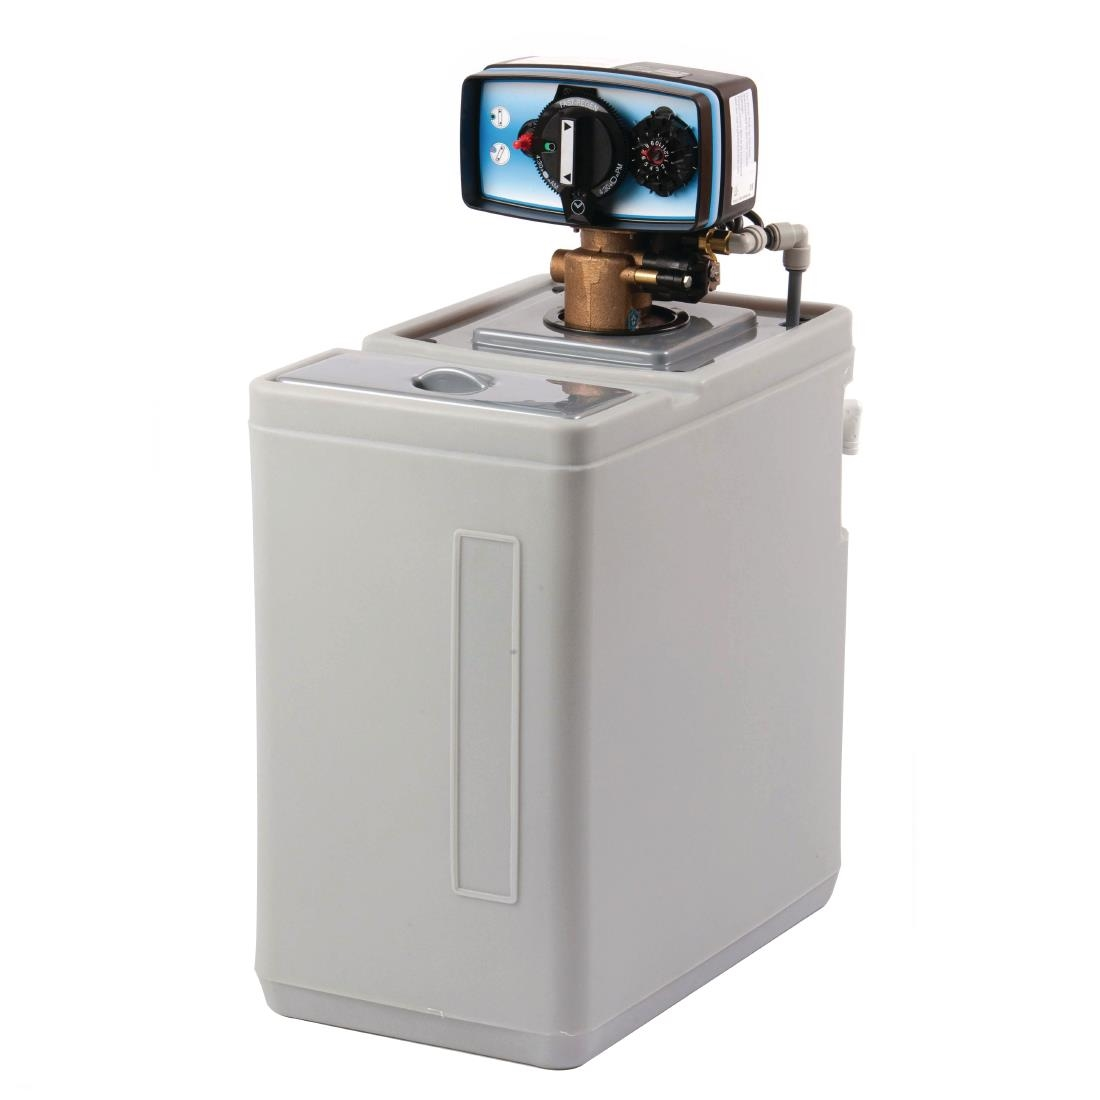 Image of Classeq Automatic External Cold Feed Water Softener WS-Auto